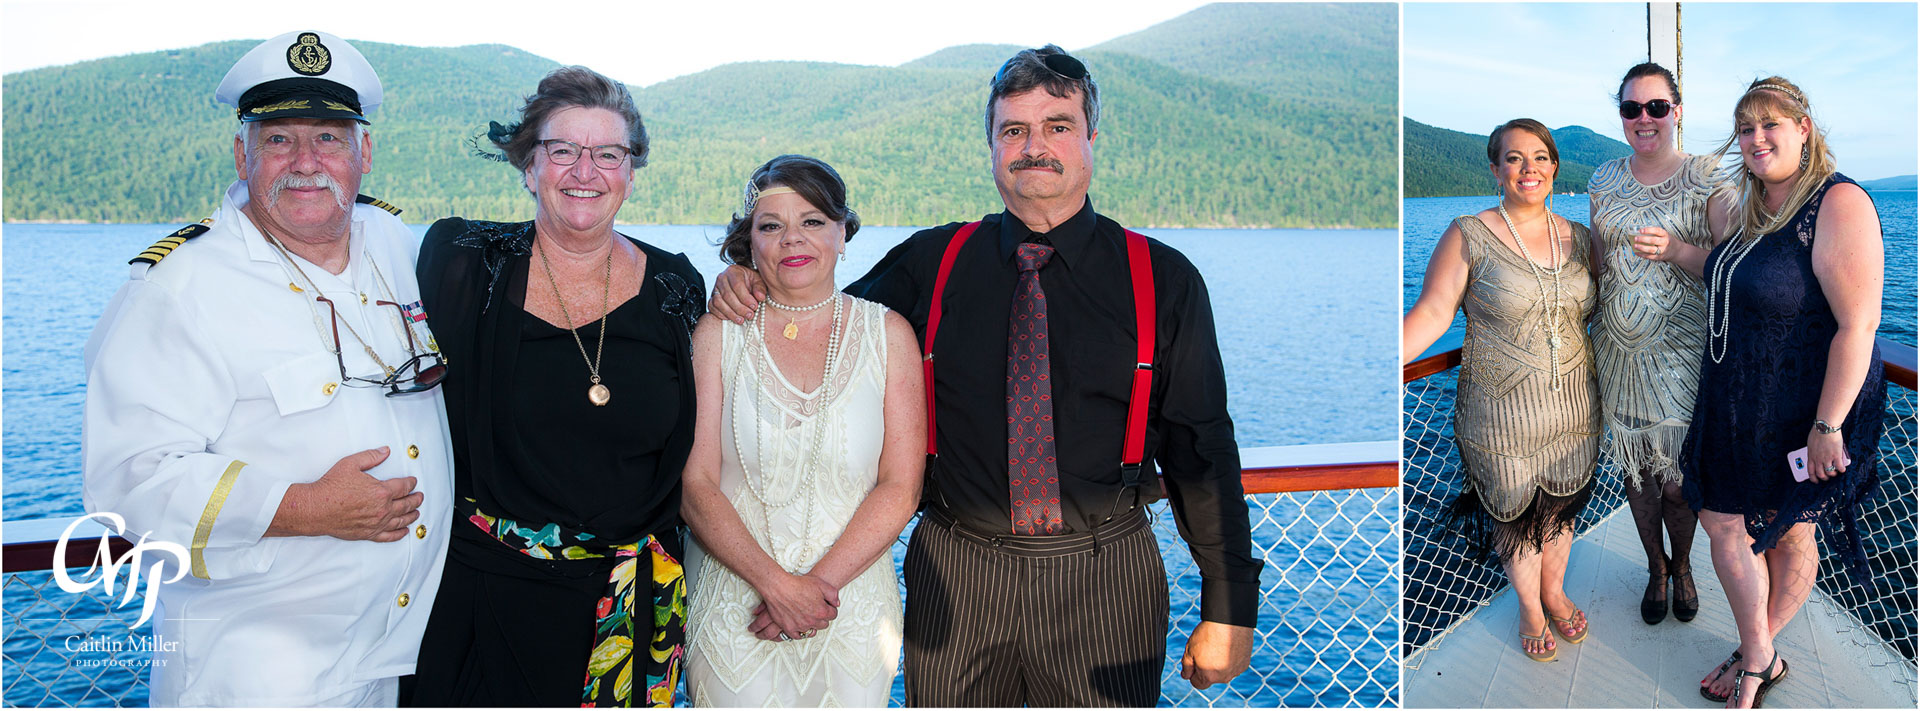 bombard-31.jpg from Jan and Robert's vow renewal on shoreline Cruise's Adirondac Boat on Lake George, NY by Saratoga Wedding Photographer Caitlin Miller Photography. Lake George Wedding Photographer. Stamford wedding photographer. Albany wedding photographer. Shoreline Cruises Wedding Photographer. Saratoga Wedding Photographer